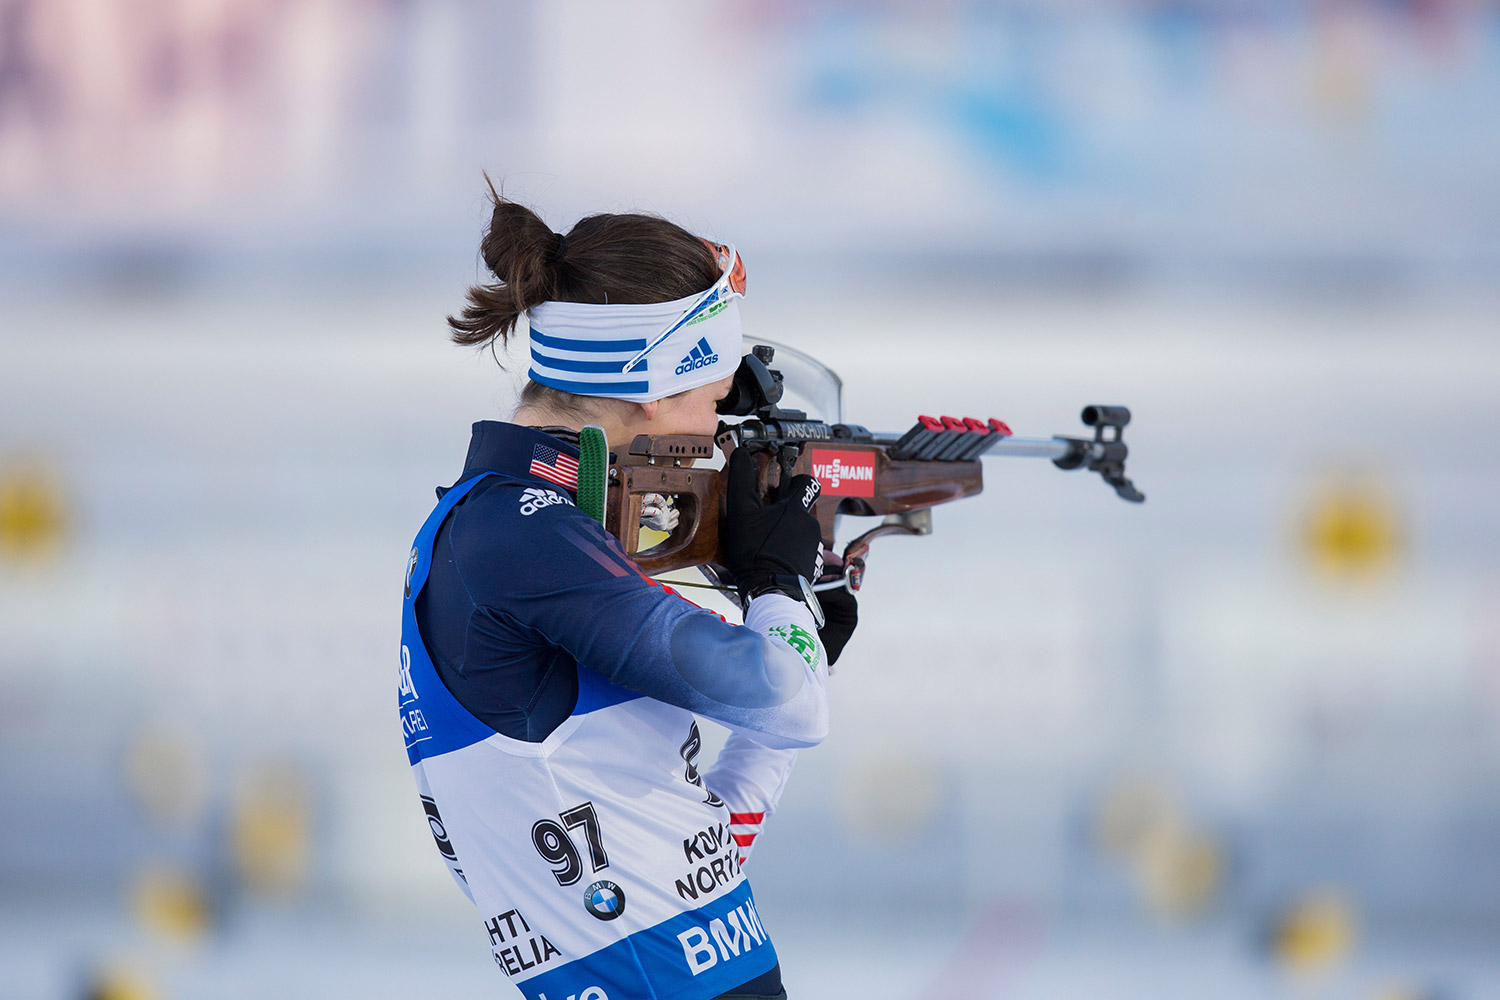 Clare Egan will be competing for the third time at the Nordic Heritage Center in Presque Isle, but first time with a rifle strapped to her back. NordicFocus